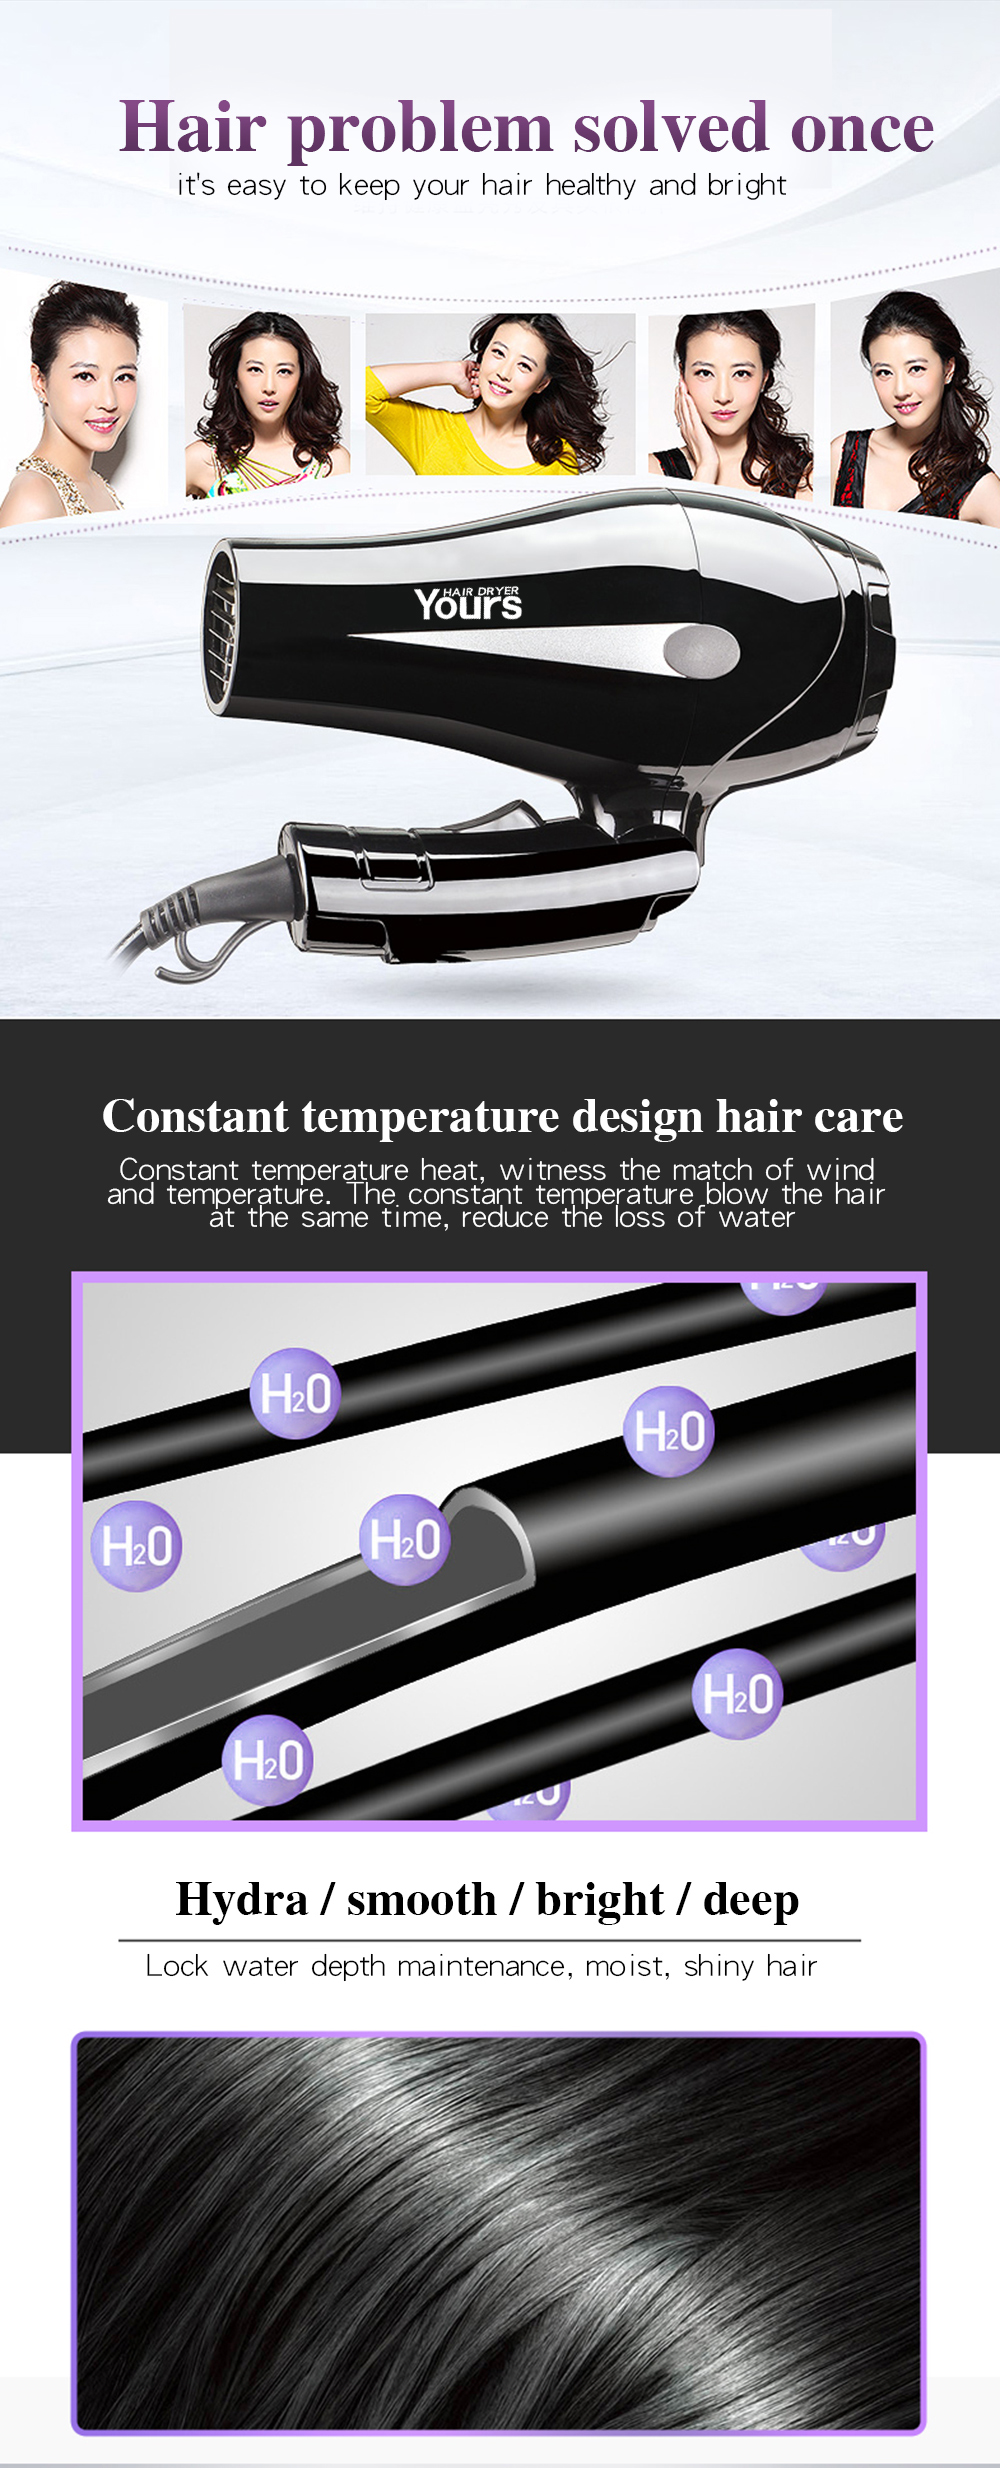 YOURS Hair Dryer Compact Hair Blower Home Use Blow Dryer Foldable Mini Hair Styling Tool YR-6232 Black- Black